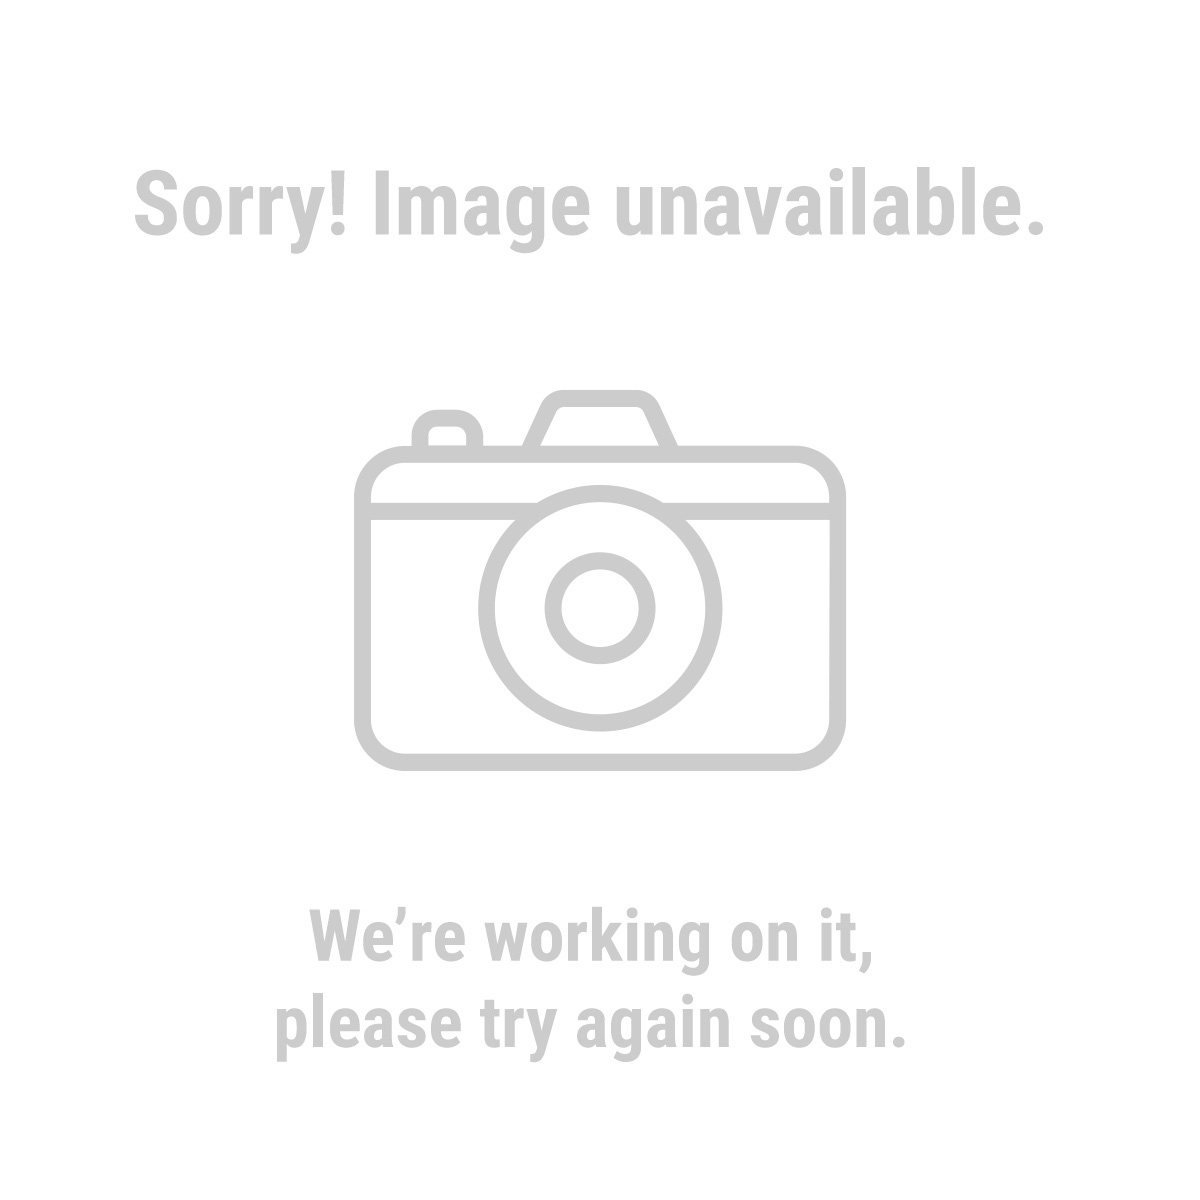 Sequoia Publishing 35569 Pocket Ref Third Edition